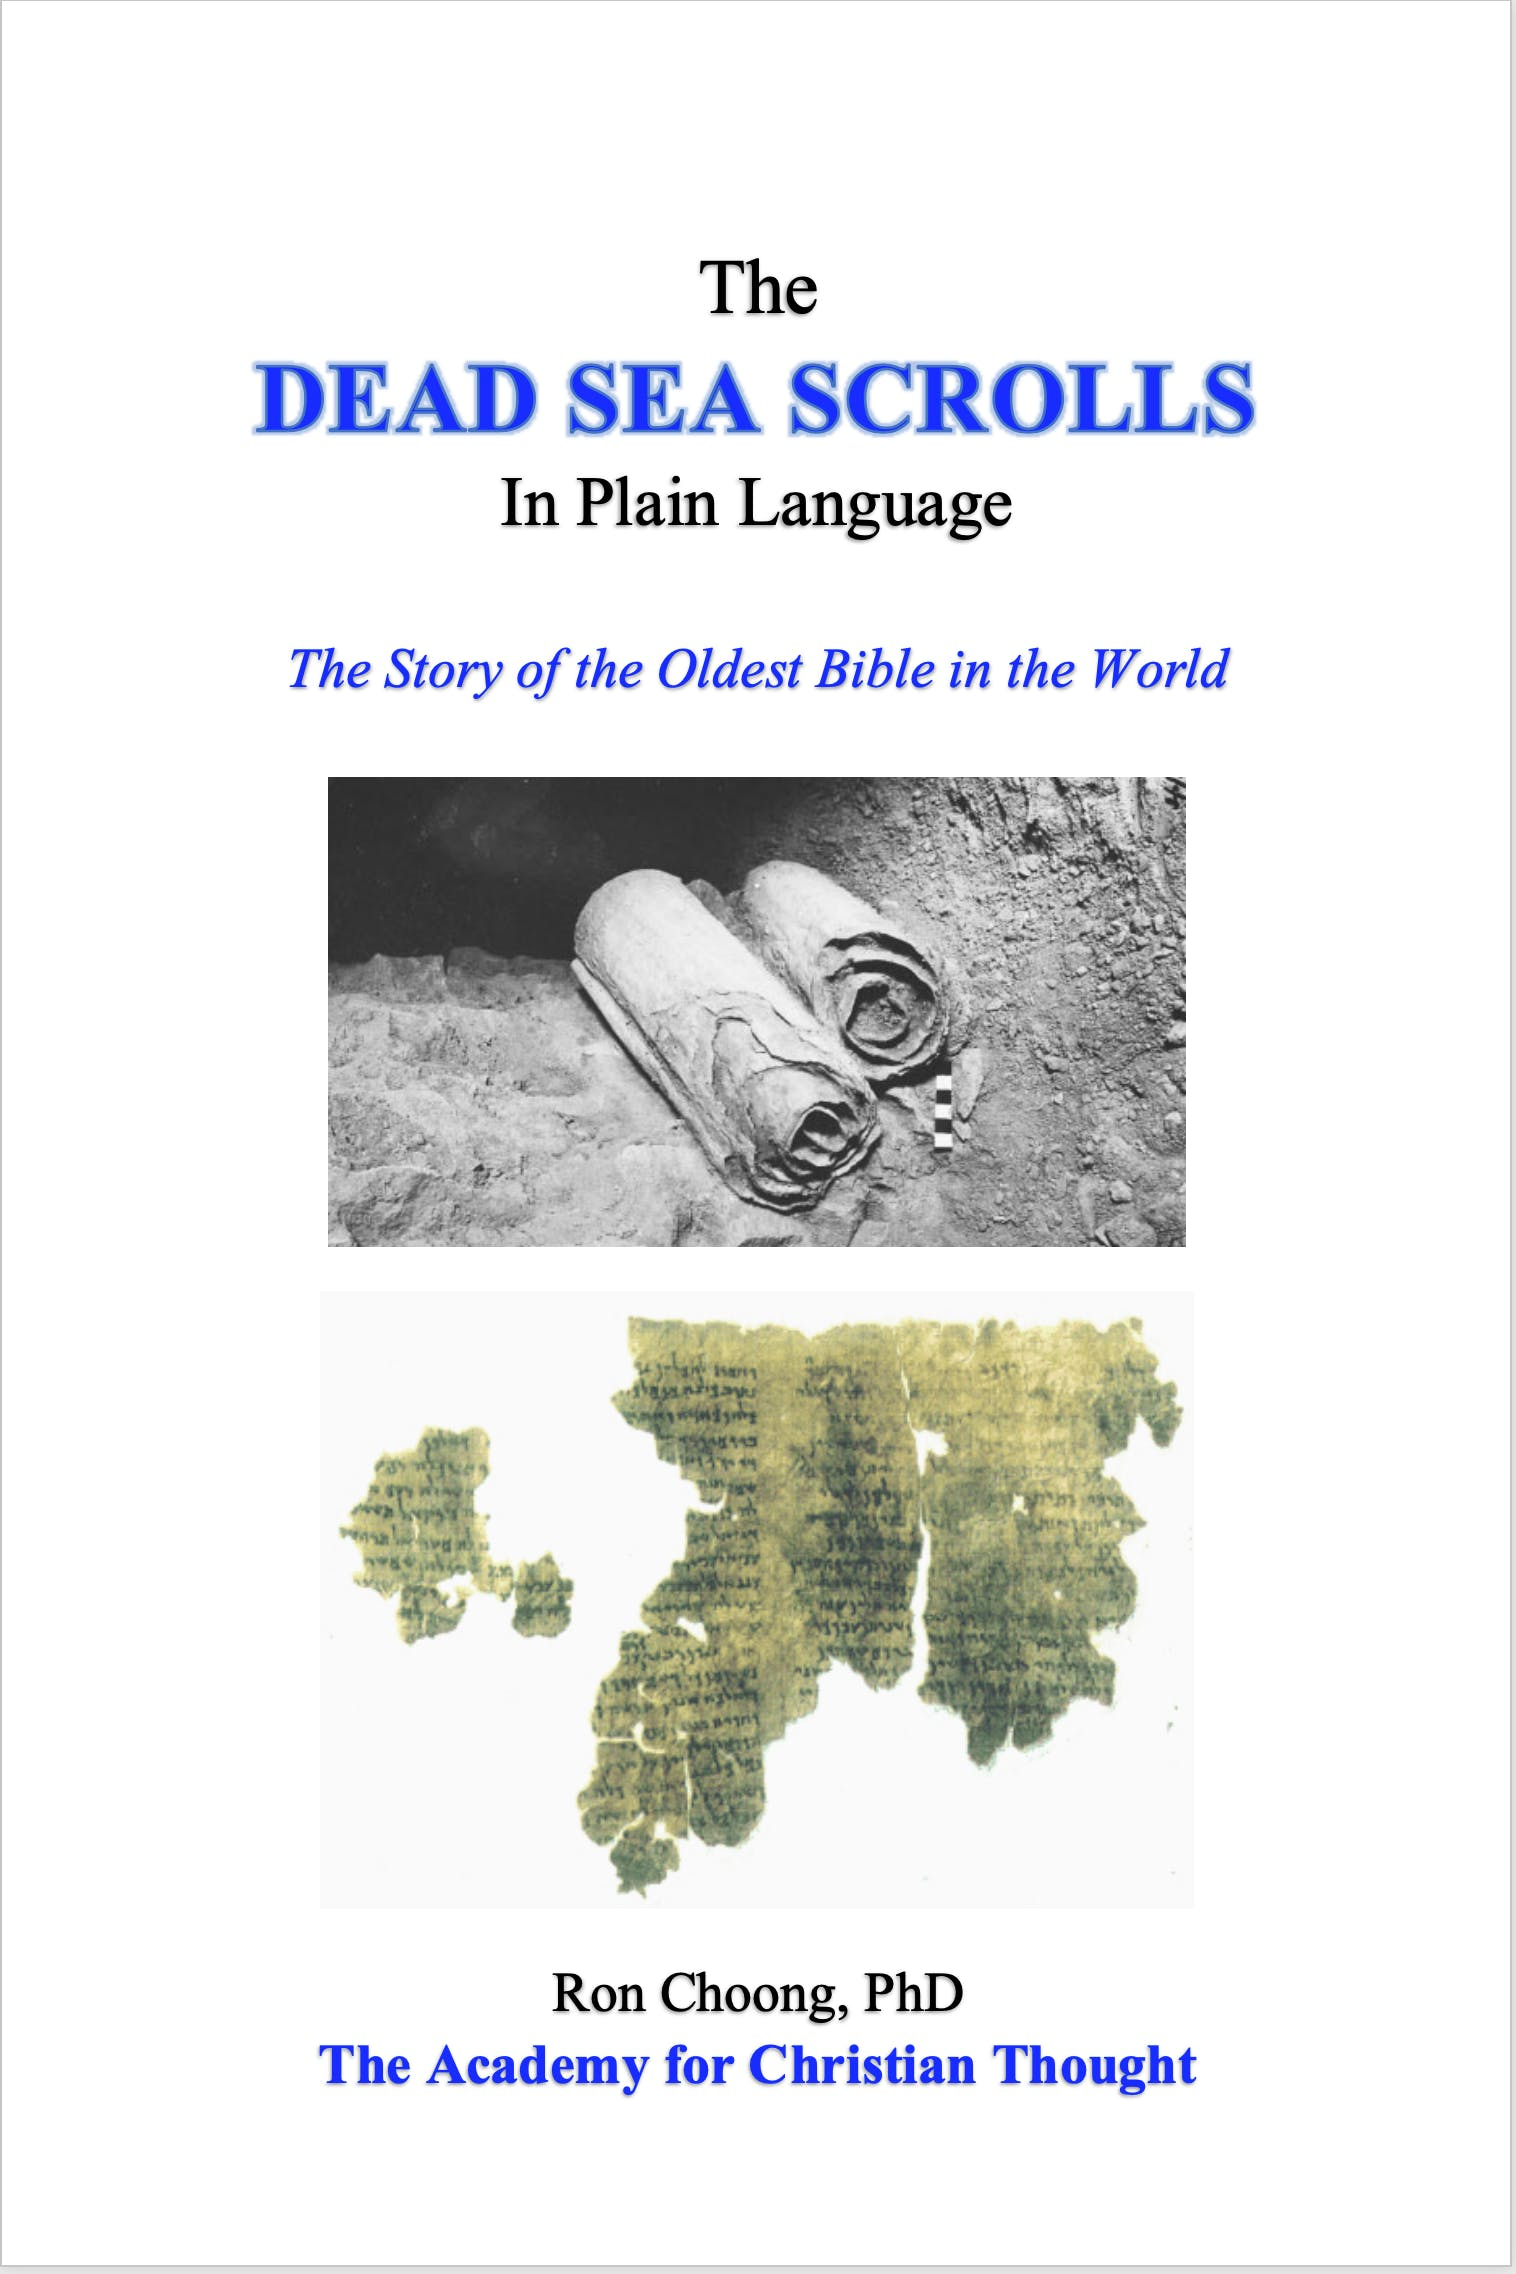 The Dead Sea Scrolls in Plain Language